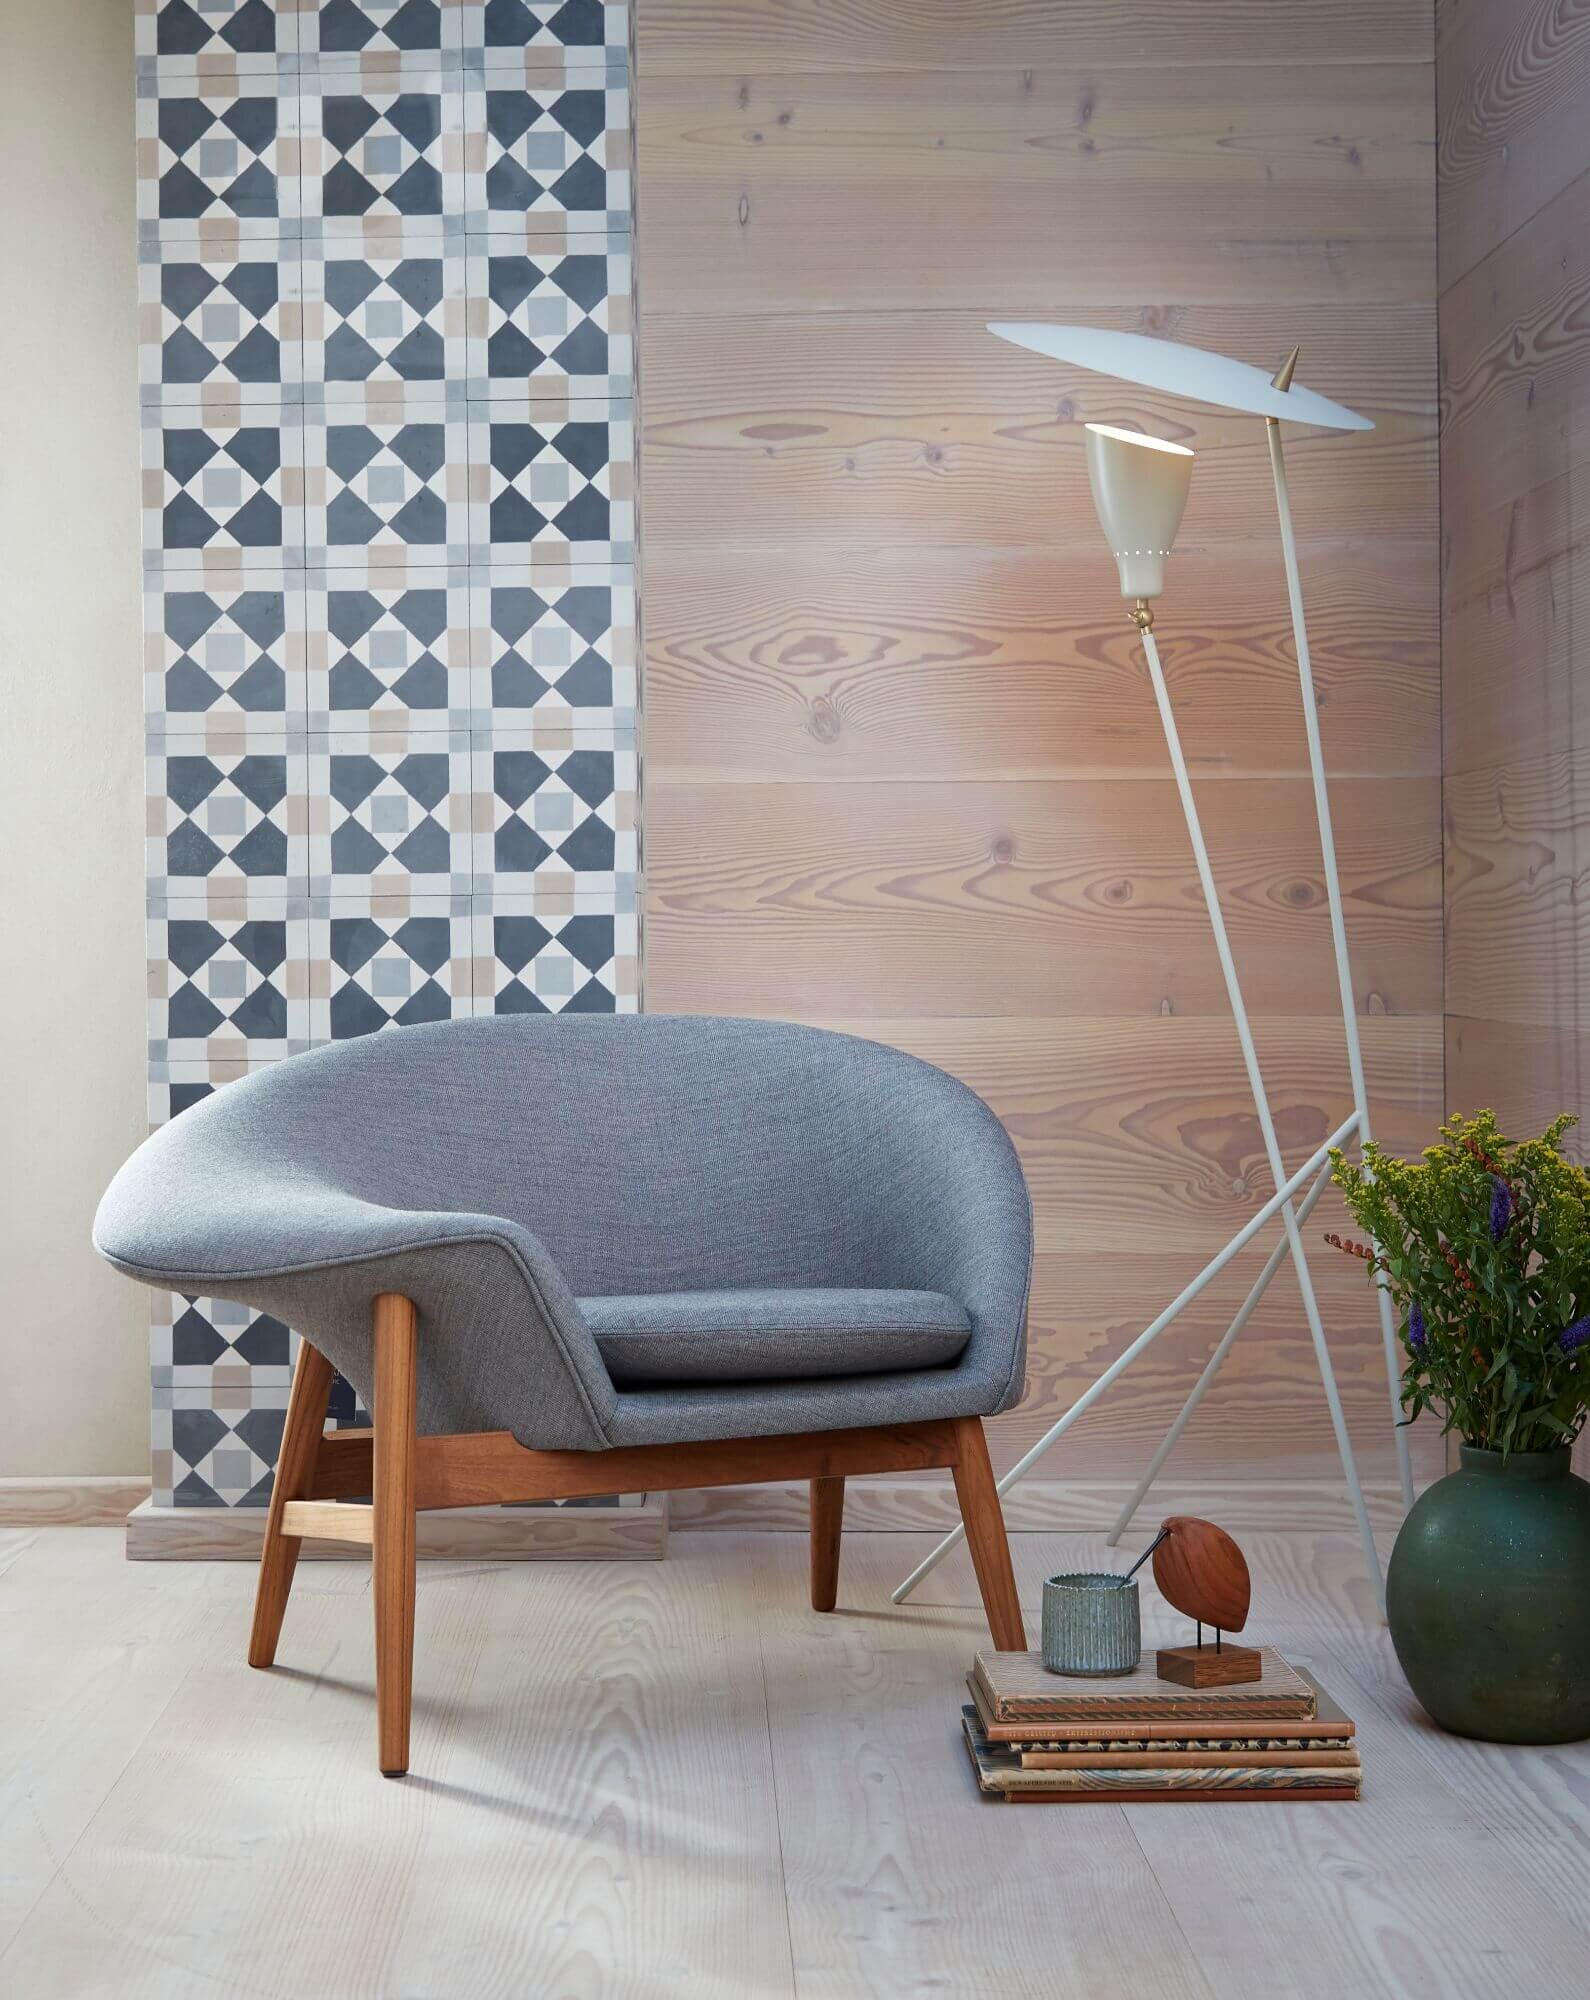 Featured: Fried Egg Chair, designed by Hans Olsen (1956). Silhouette Floor Lamp, designed by Svend Aage Holm-Sorensen (1956). Maker: Warm Nordic